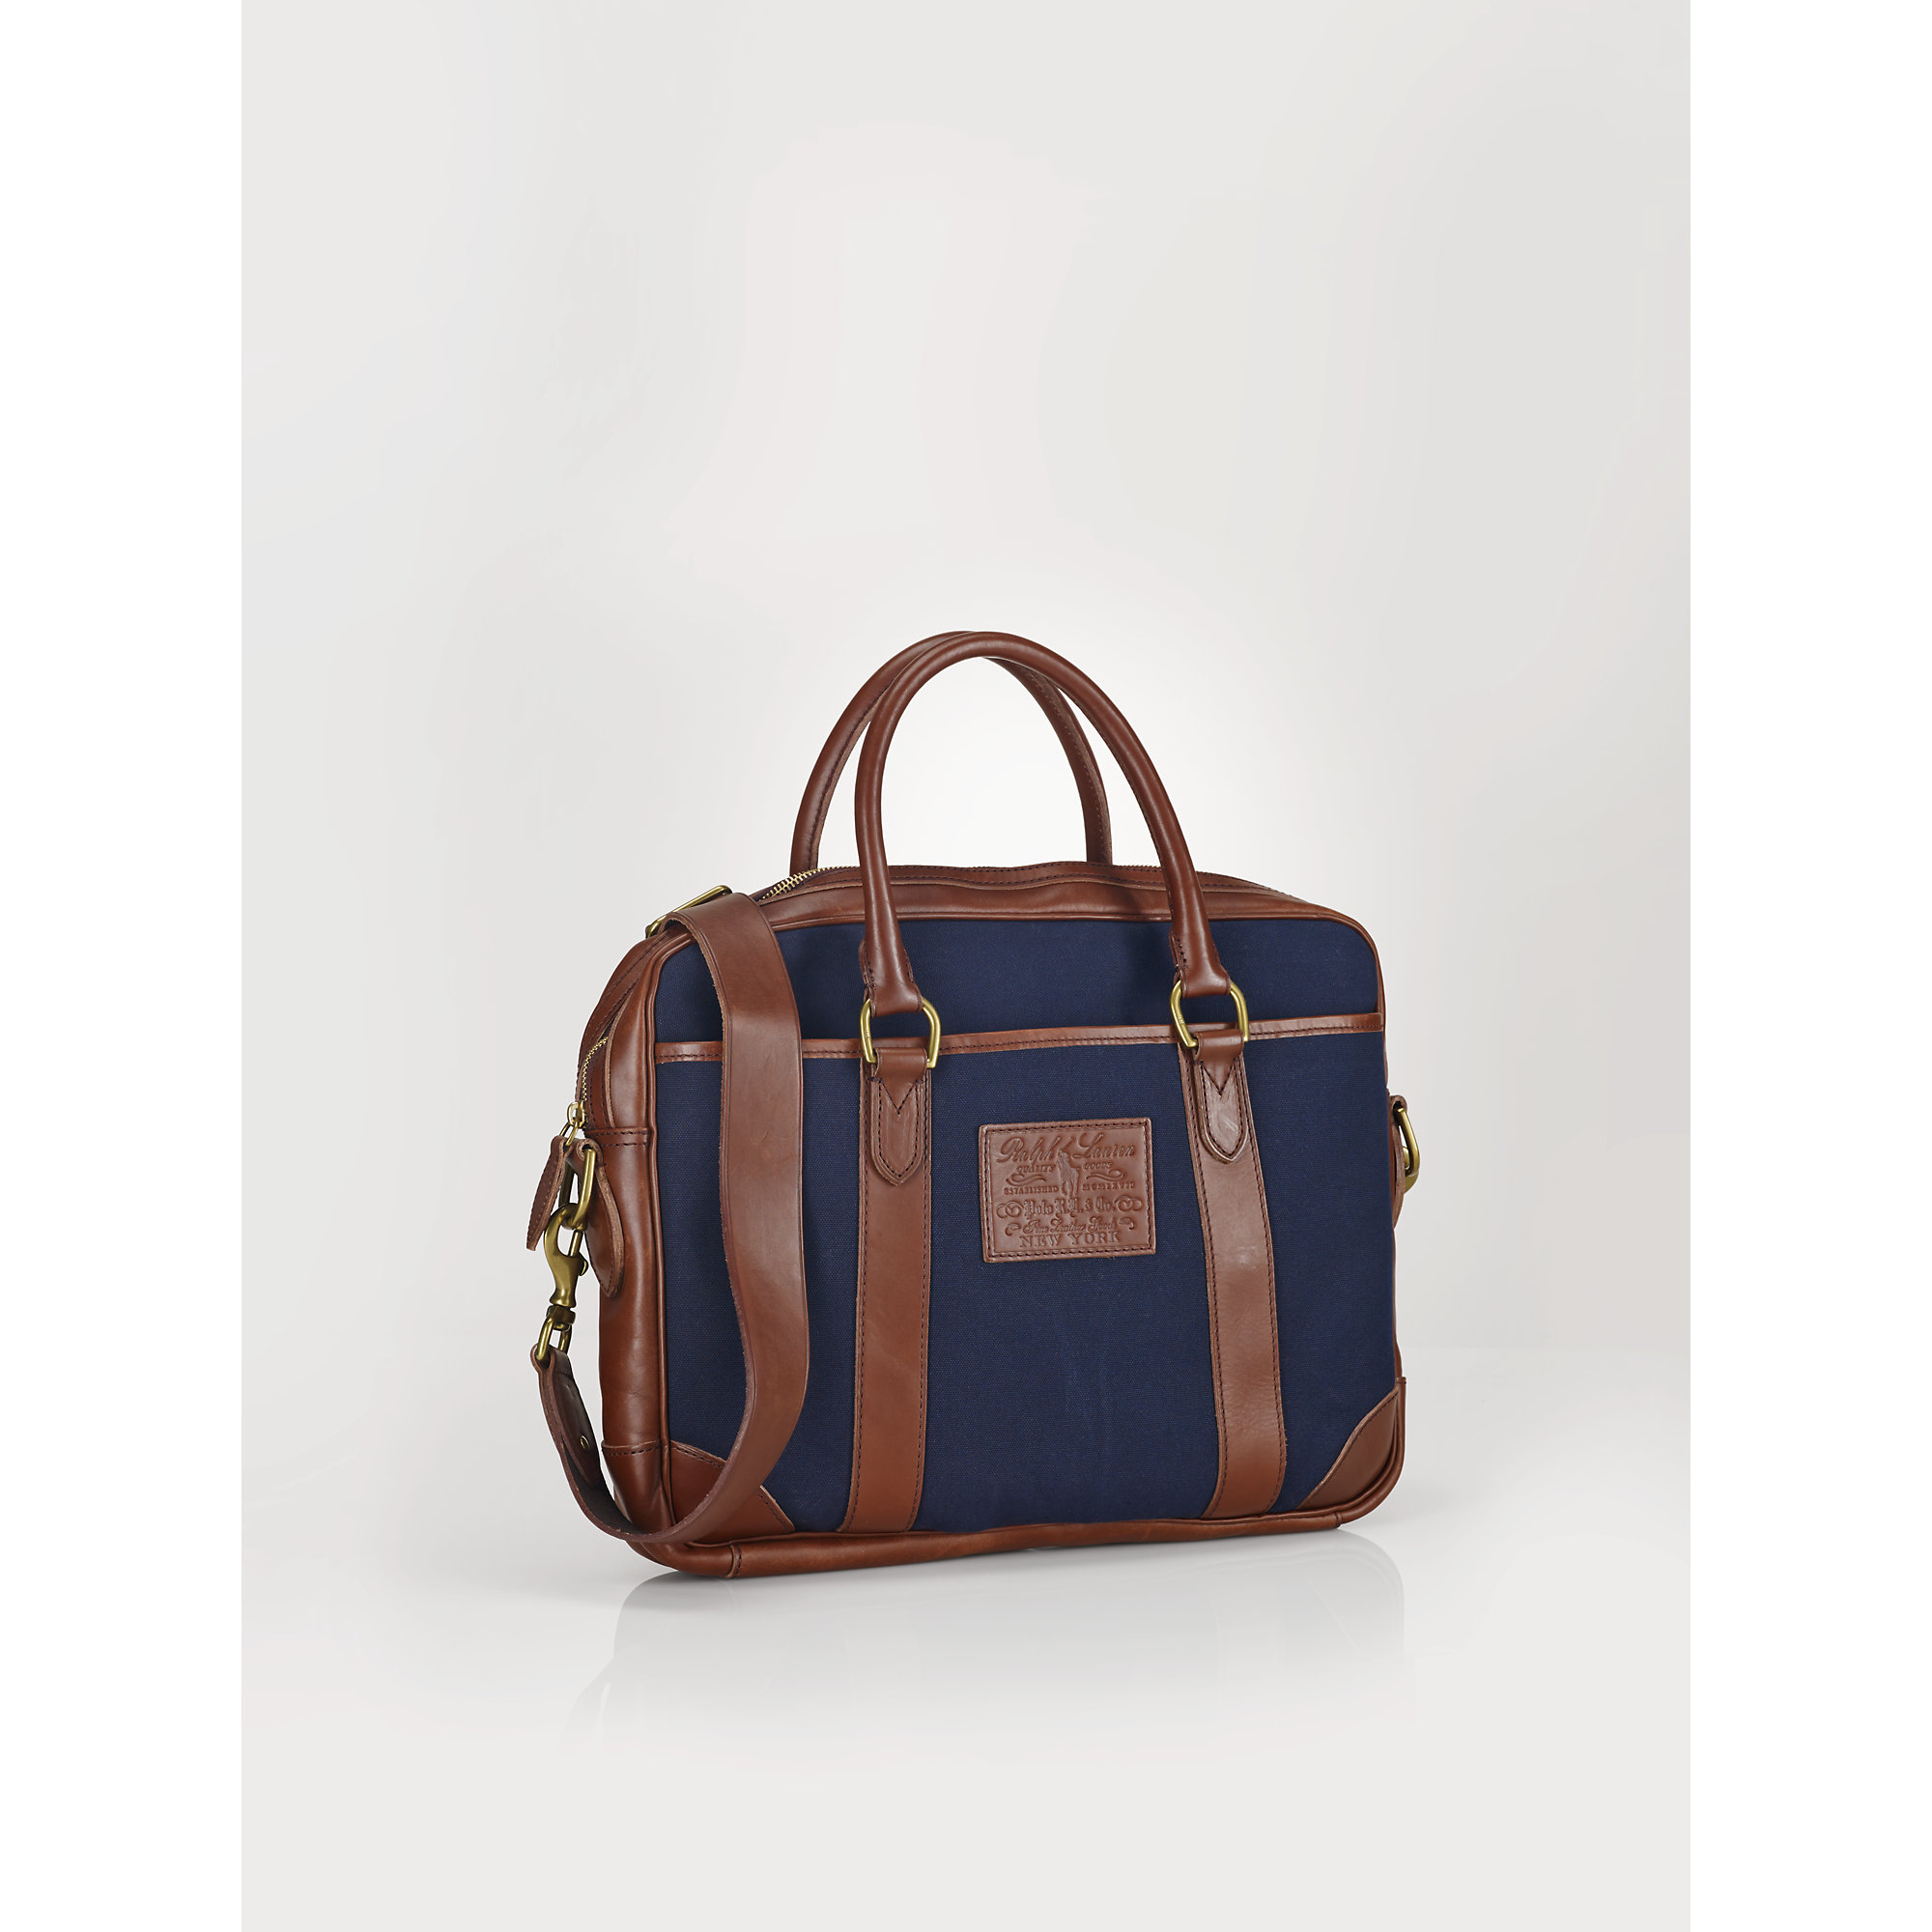 5af0b9cae253 Lyst - Polo Ralph Lauren Leather-trim Commuter Bag in Blue for Men